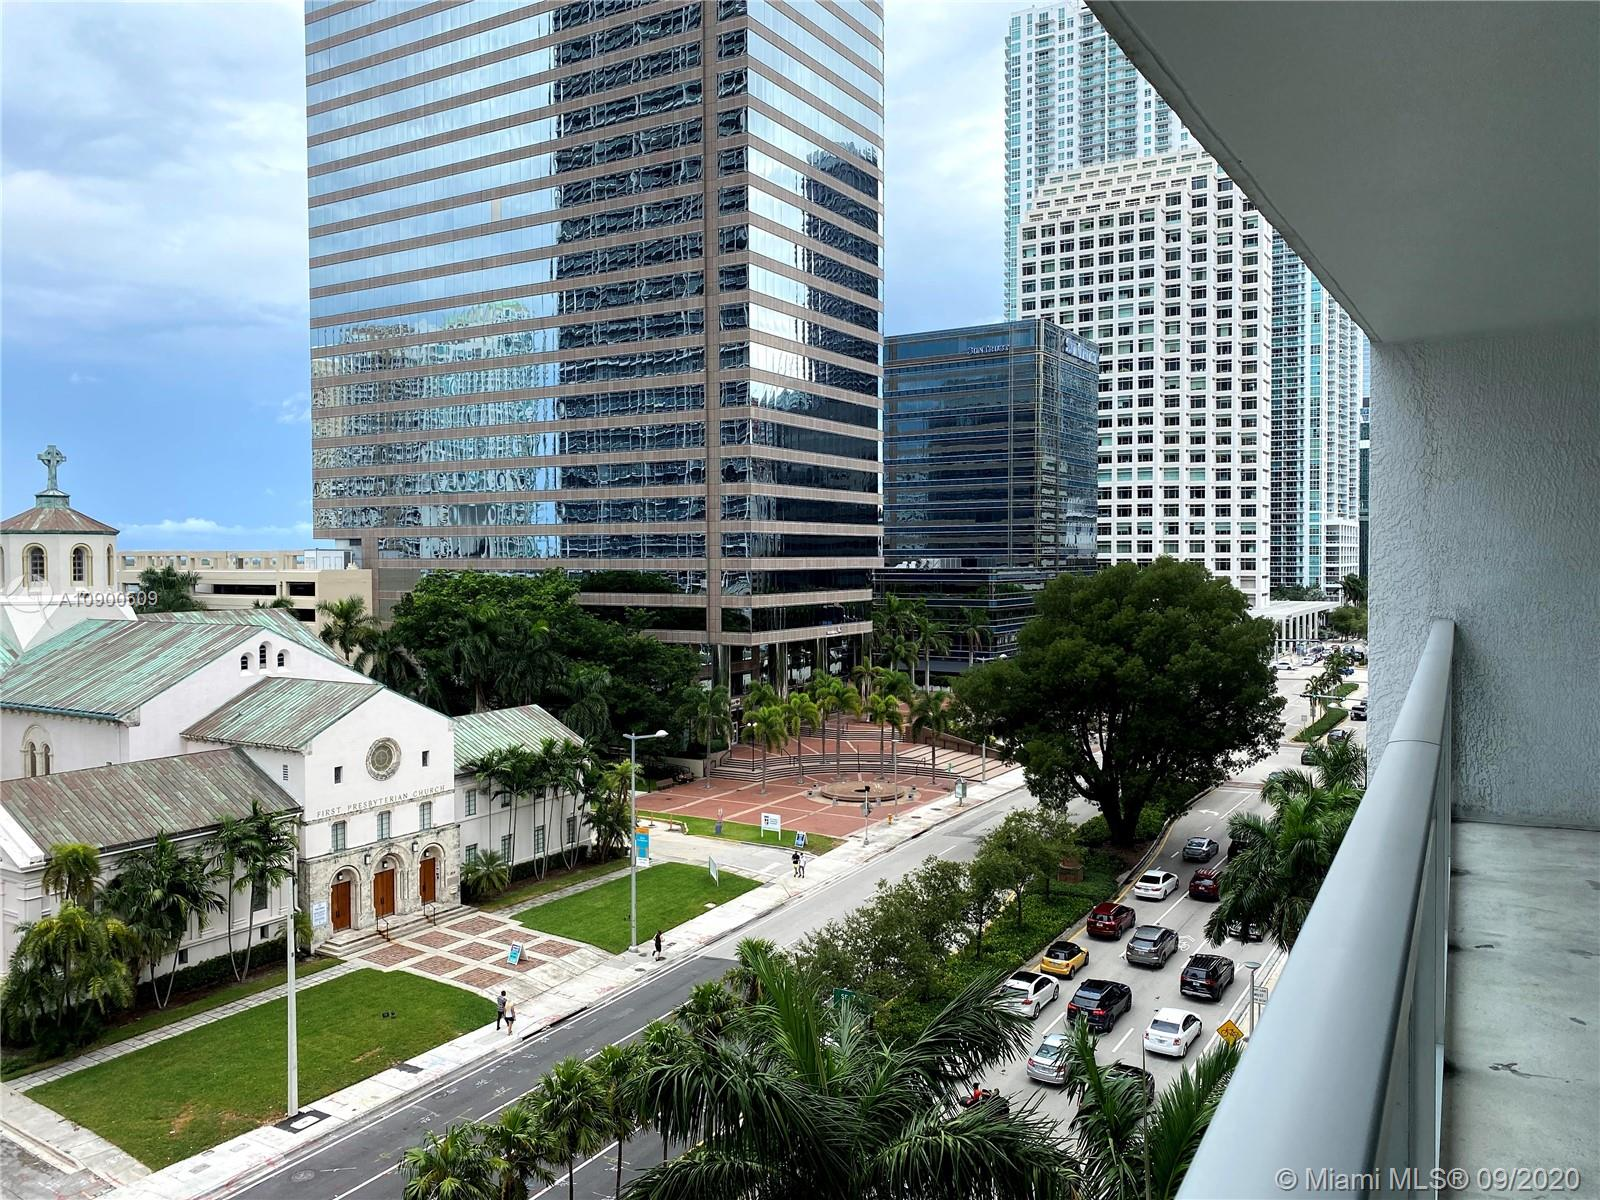 Welcome to vibrant Brickell Avenue. Located on the 7th floor, beautiful 1 bed + DEN / 1 bath / 1 parking on the same floor, offers pleasant views of Brickell Avenue. Facing the picturesque church & greens of the park across, a peak of the Miami River can also be enjoyed. Walking distance to Whole Foods, Brickell City Centre. Features rooftop pool & bar, a second larger pool with wine & entertainment rooms, concierge, valet & fitness center. Carpeted floors freshly steamed (Sorry, no pets)& professionally cleaned.